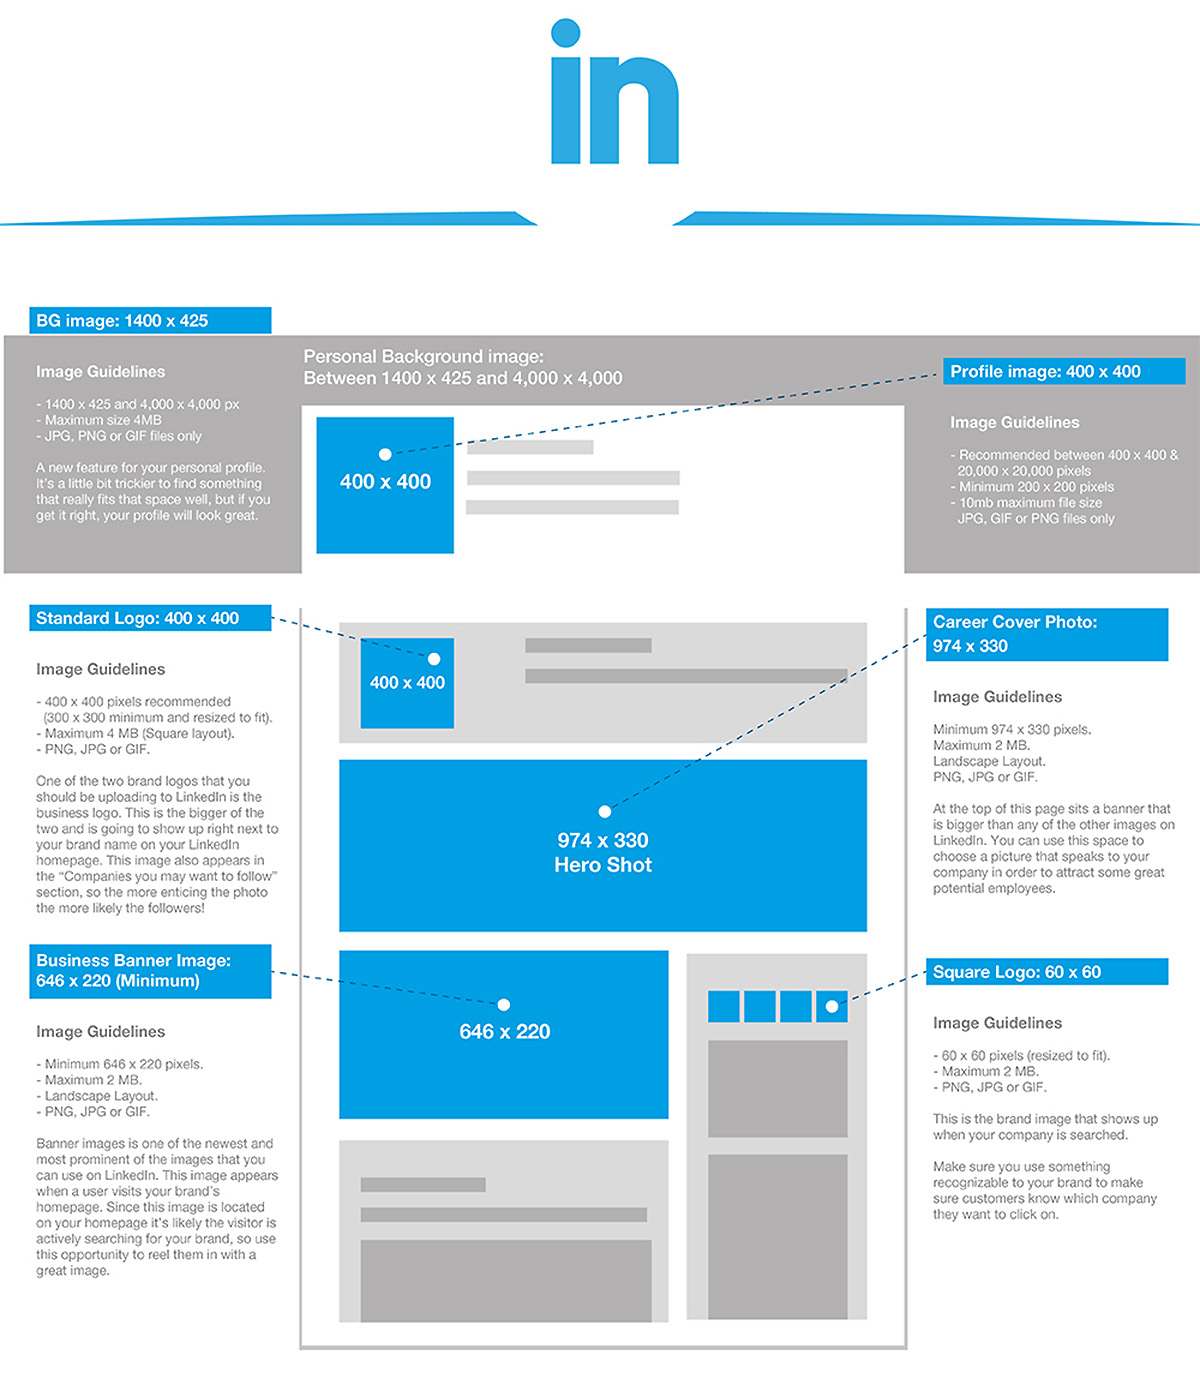 Social Media Image Sizing Guide SocialMediaSize-LinkedIn (© James D. DeCamp | http://JamesDeCamp.com | 614-367-6366)